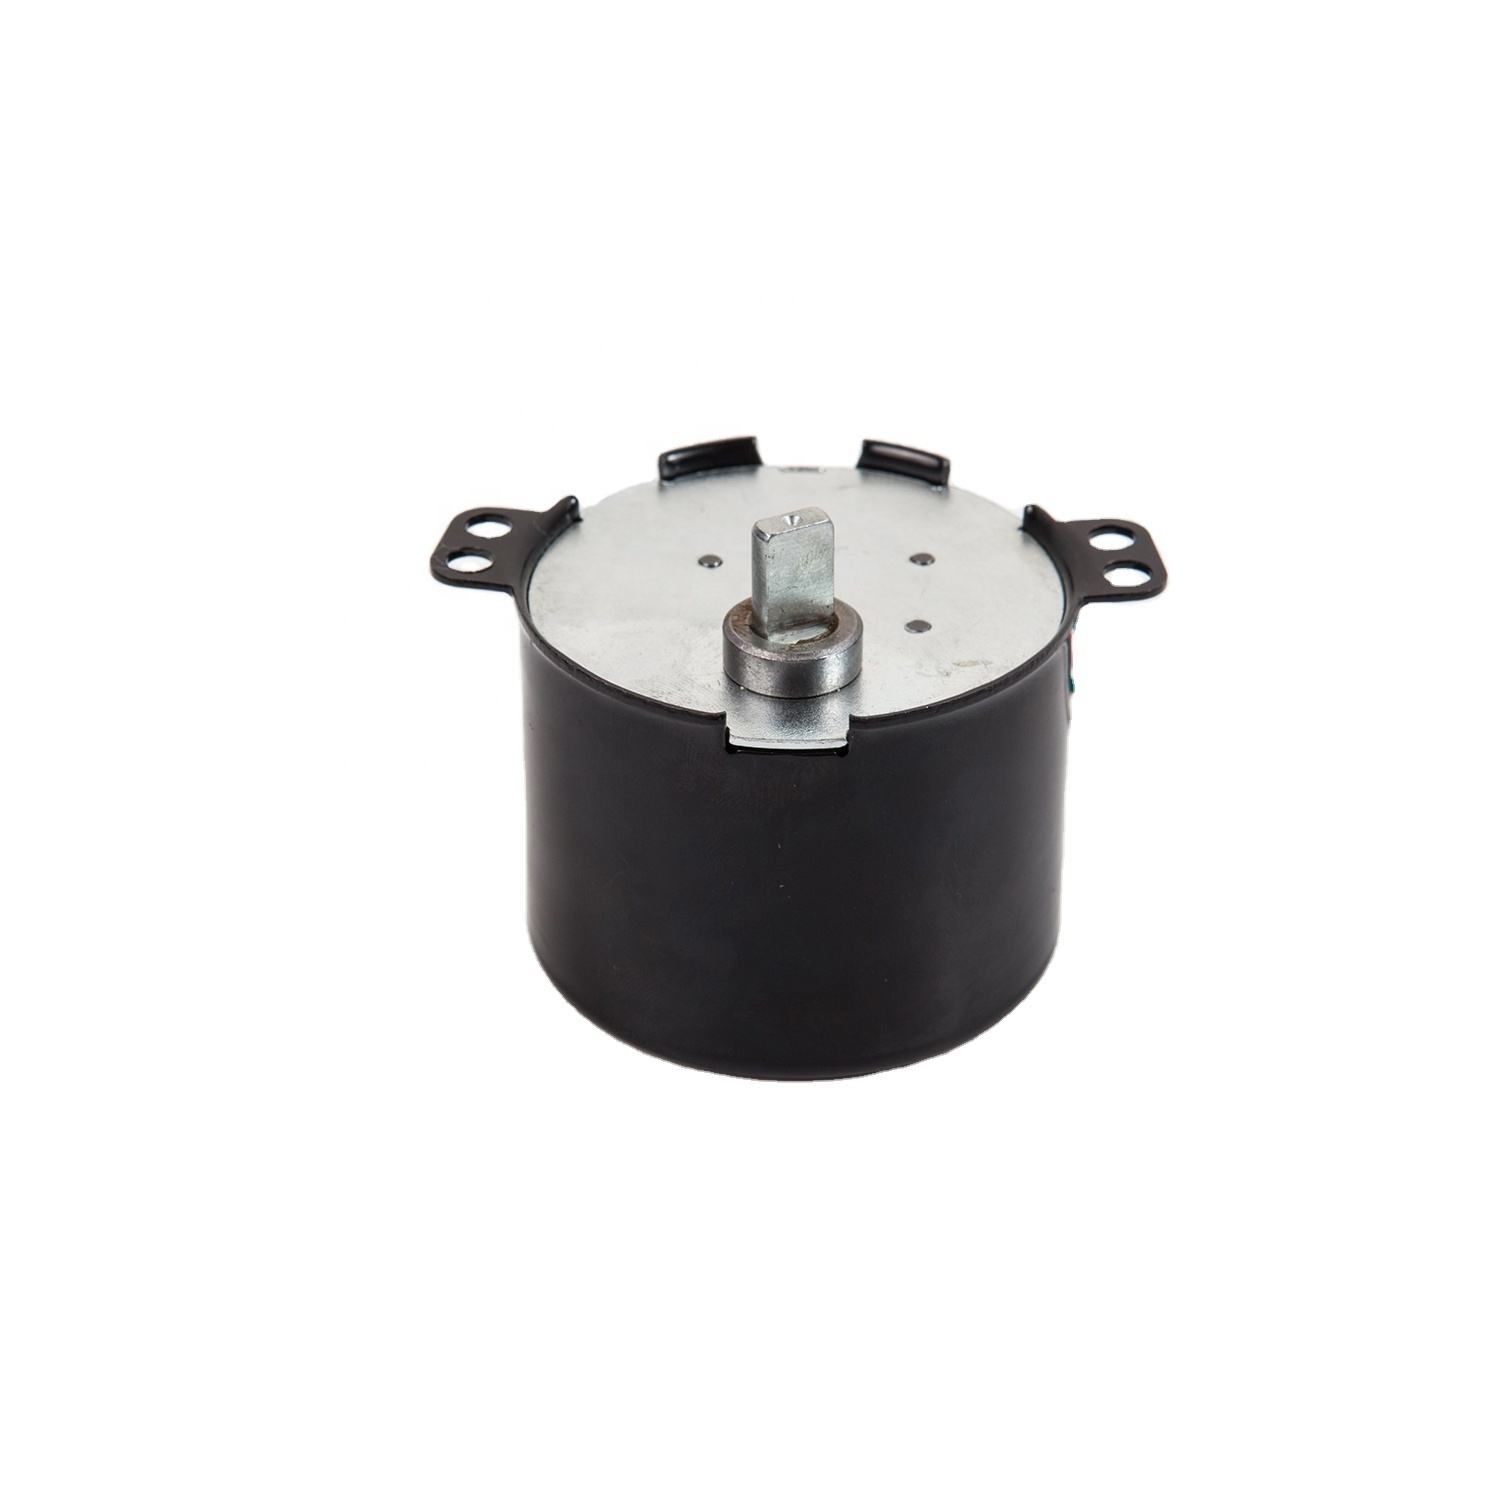 Small Synchronous 12 24 Volt Motor Cw Ccw Electric Fan Motor Parts